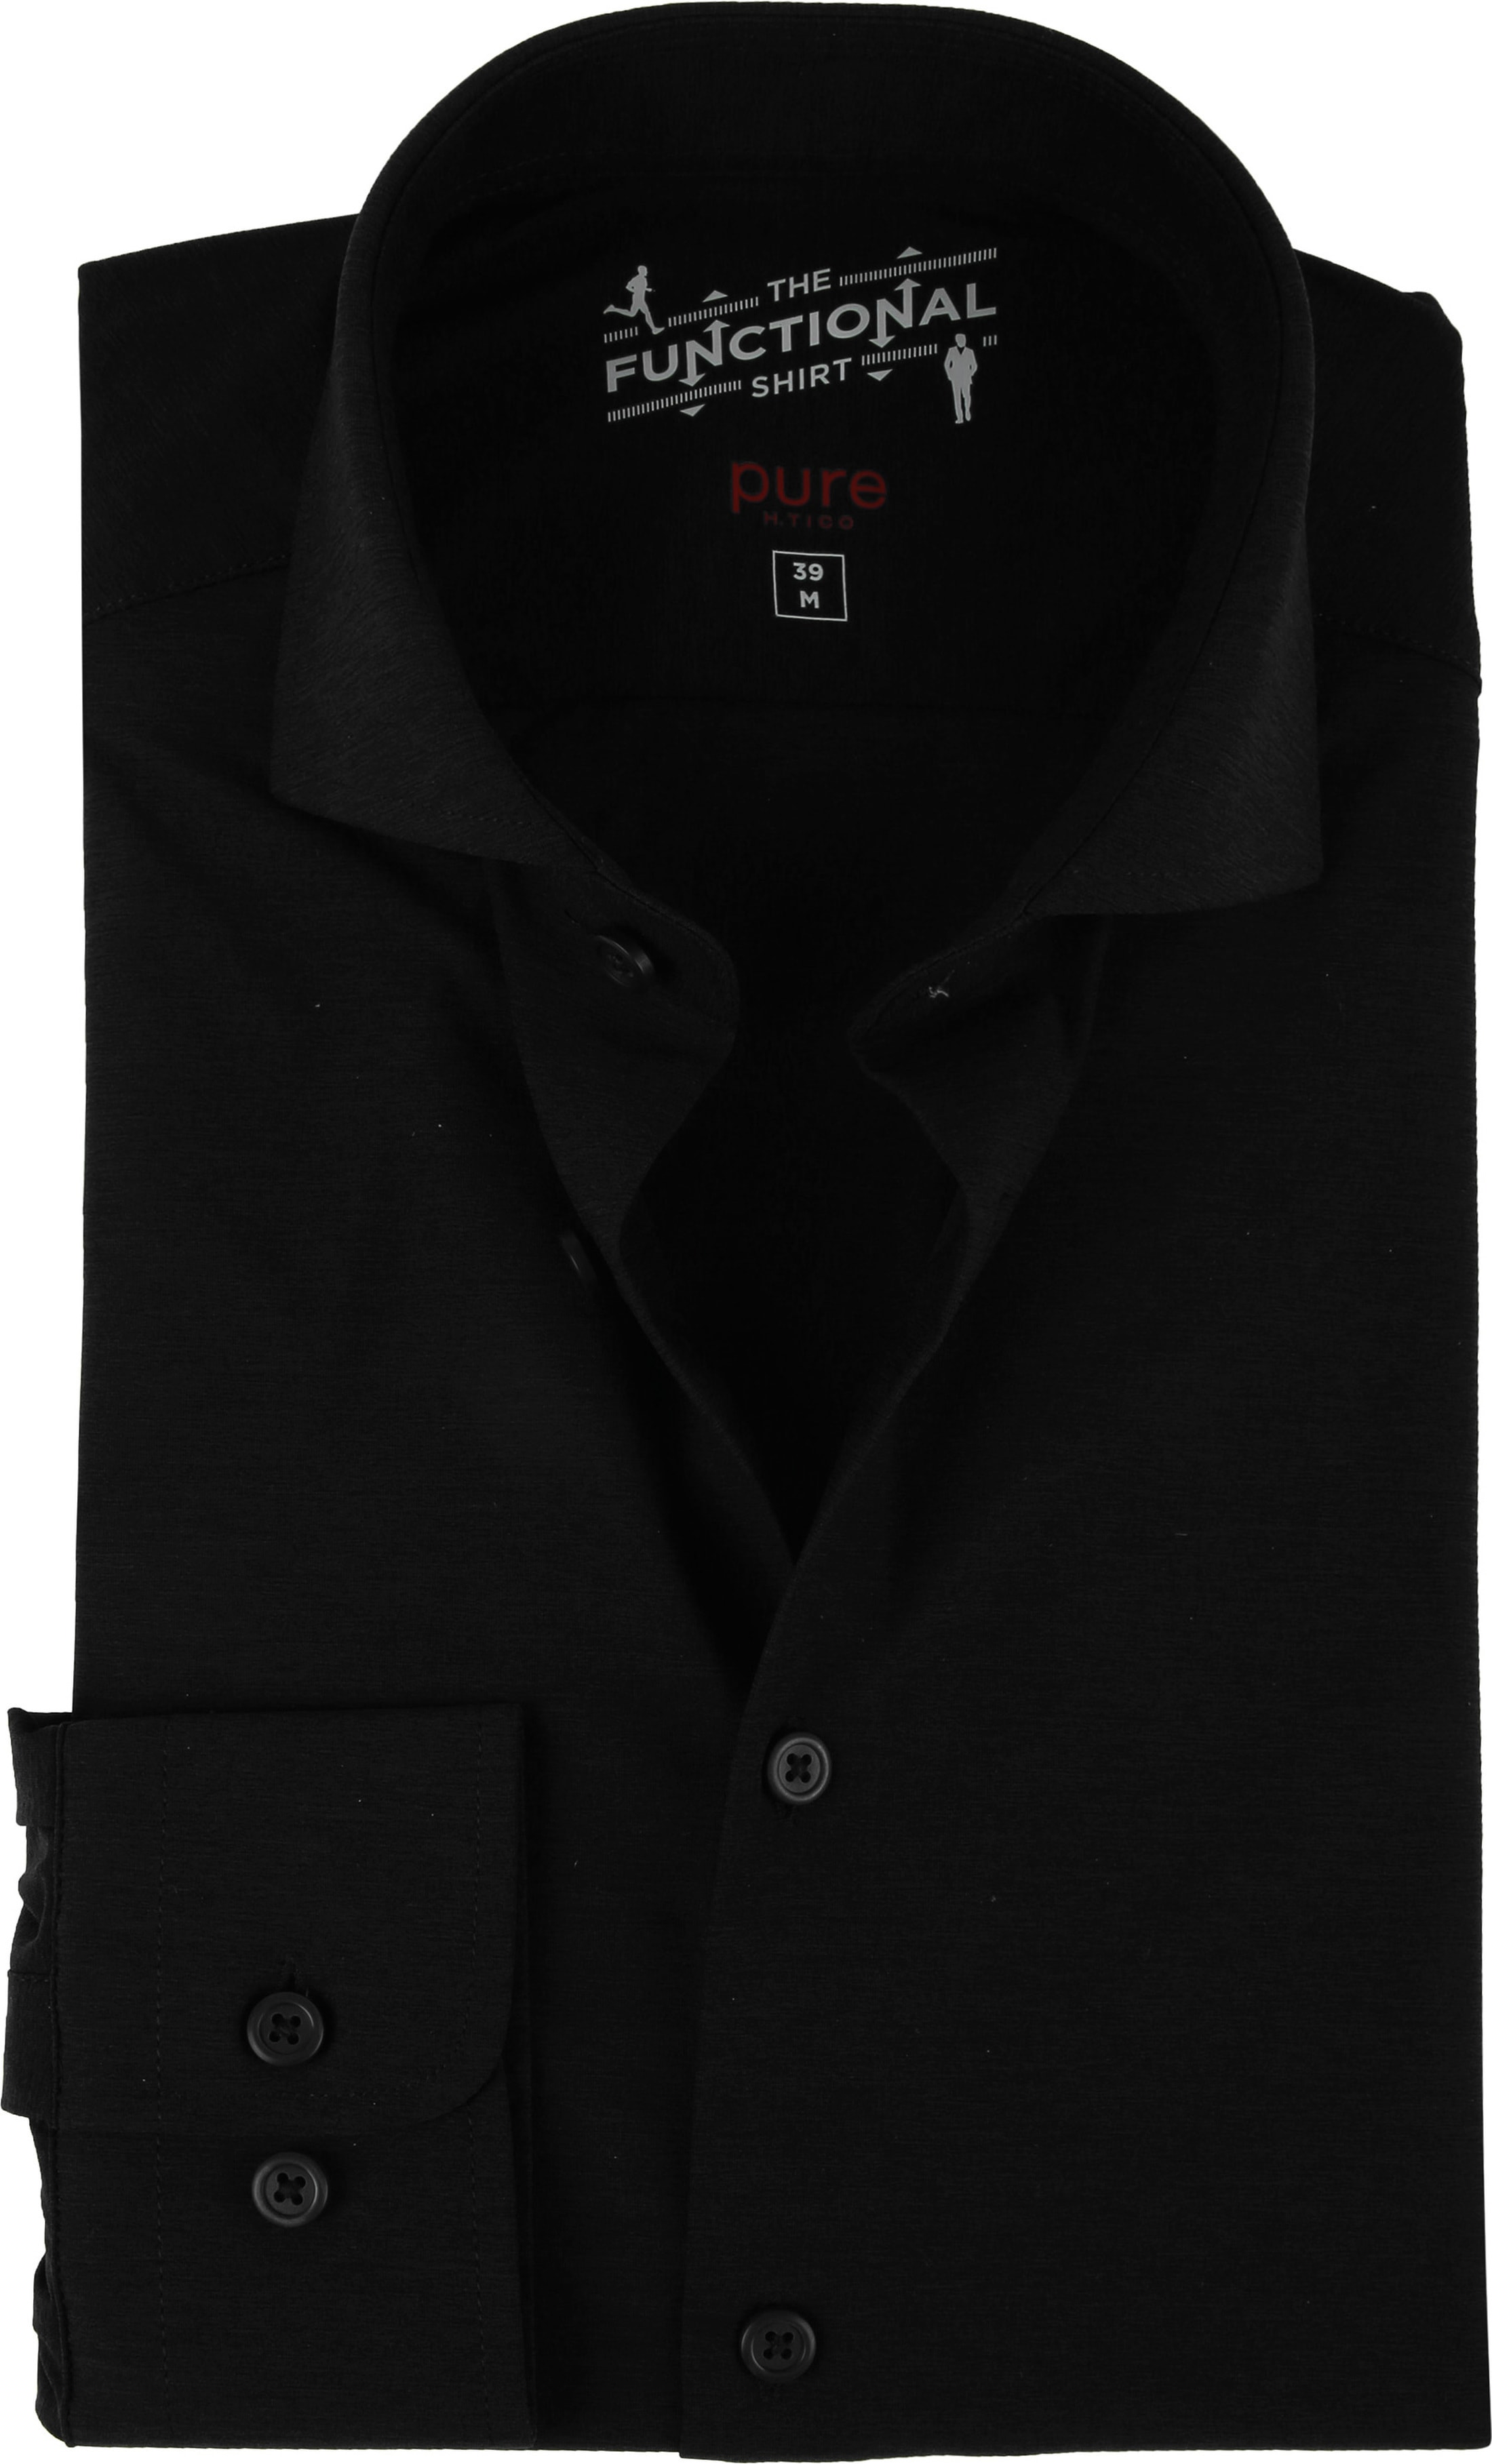 Pure H.Tico The Functional Shirt Black photo 0